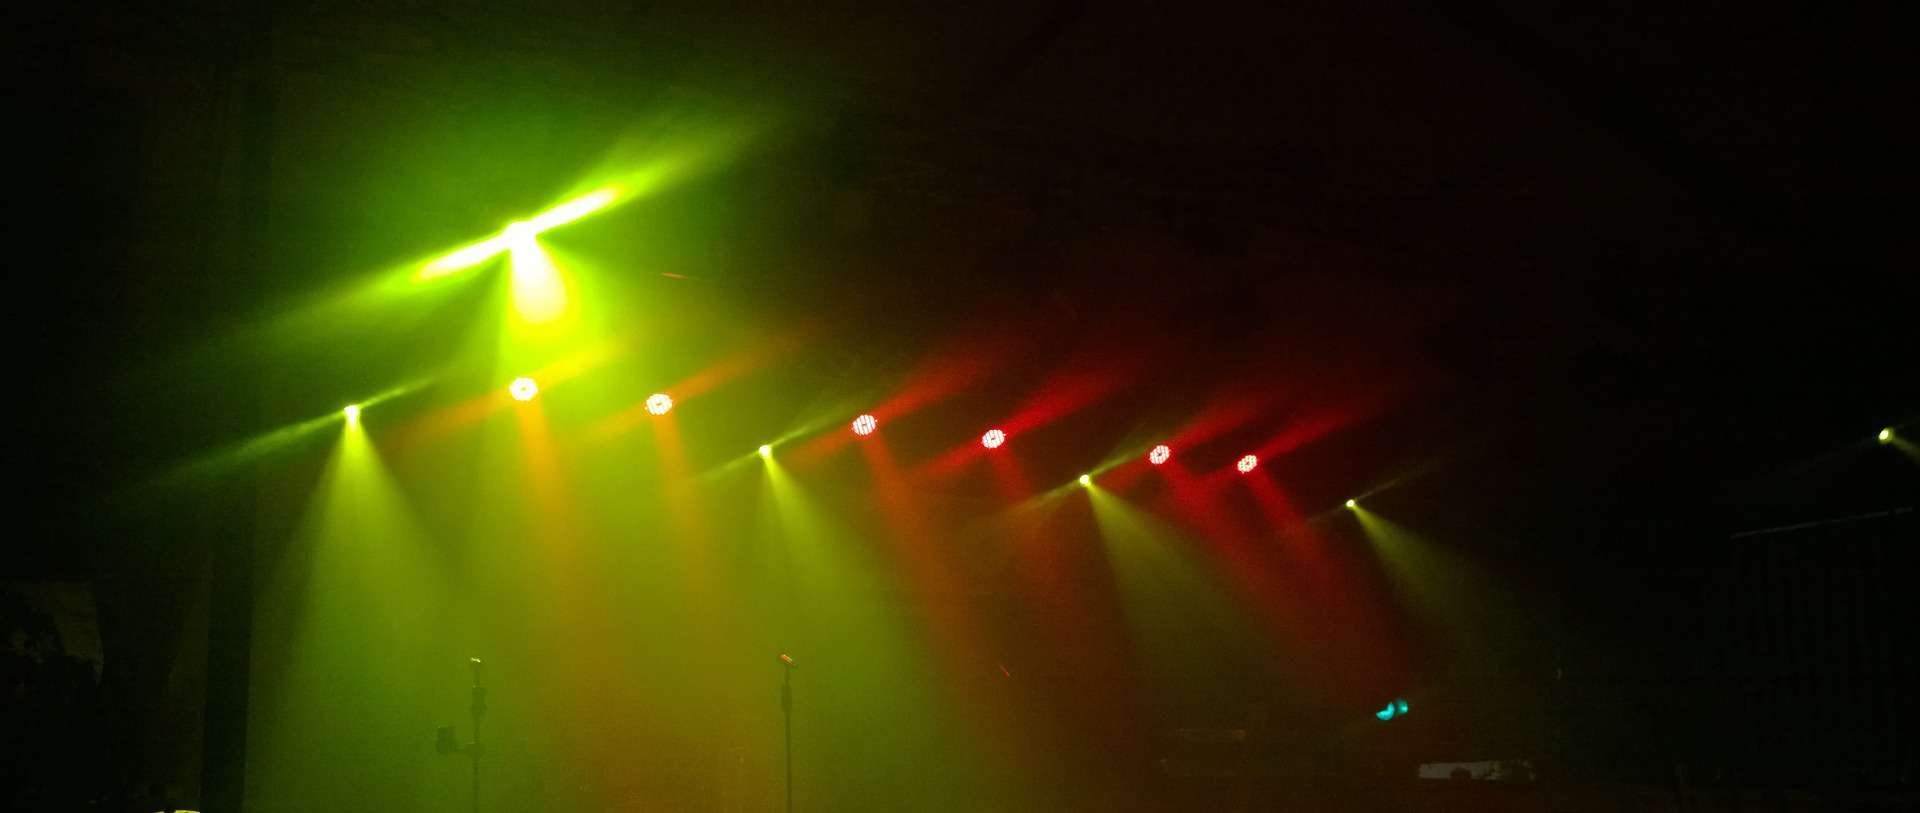 Fog machines being used in a stage